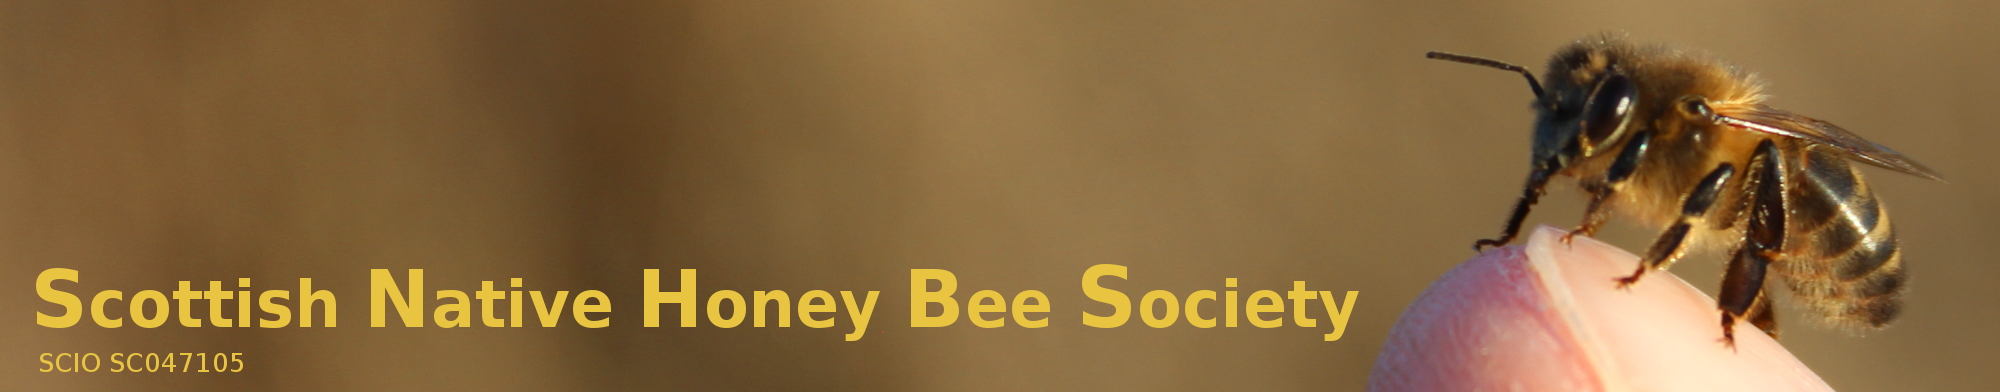 Scottish Native Honey Bee Society (SNHBS)